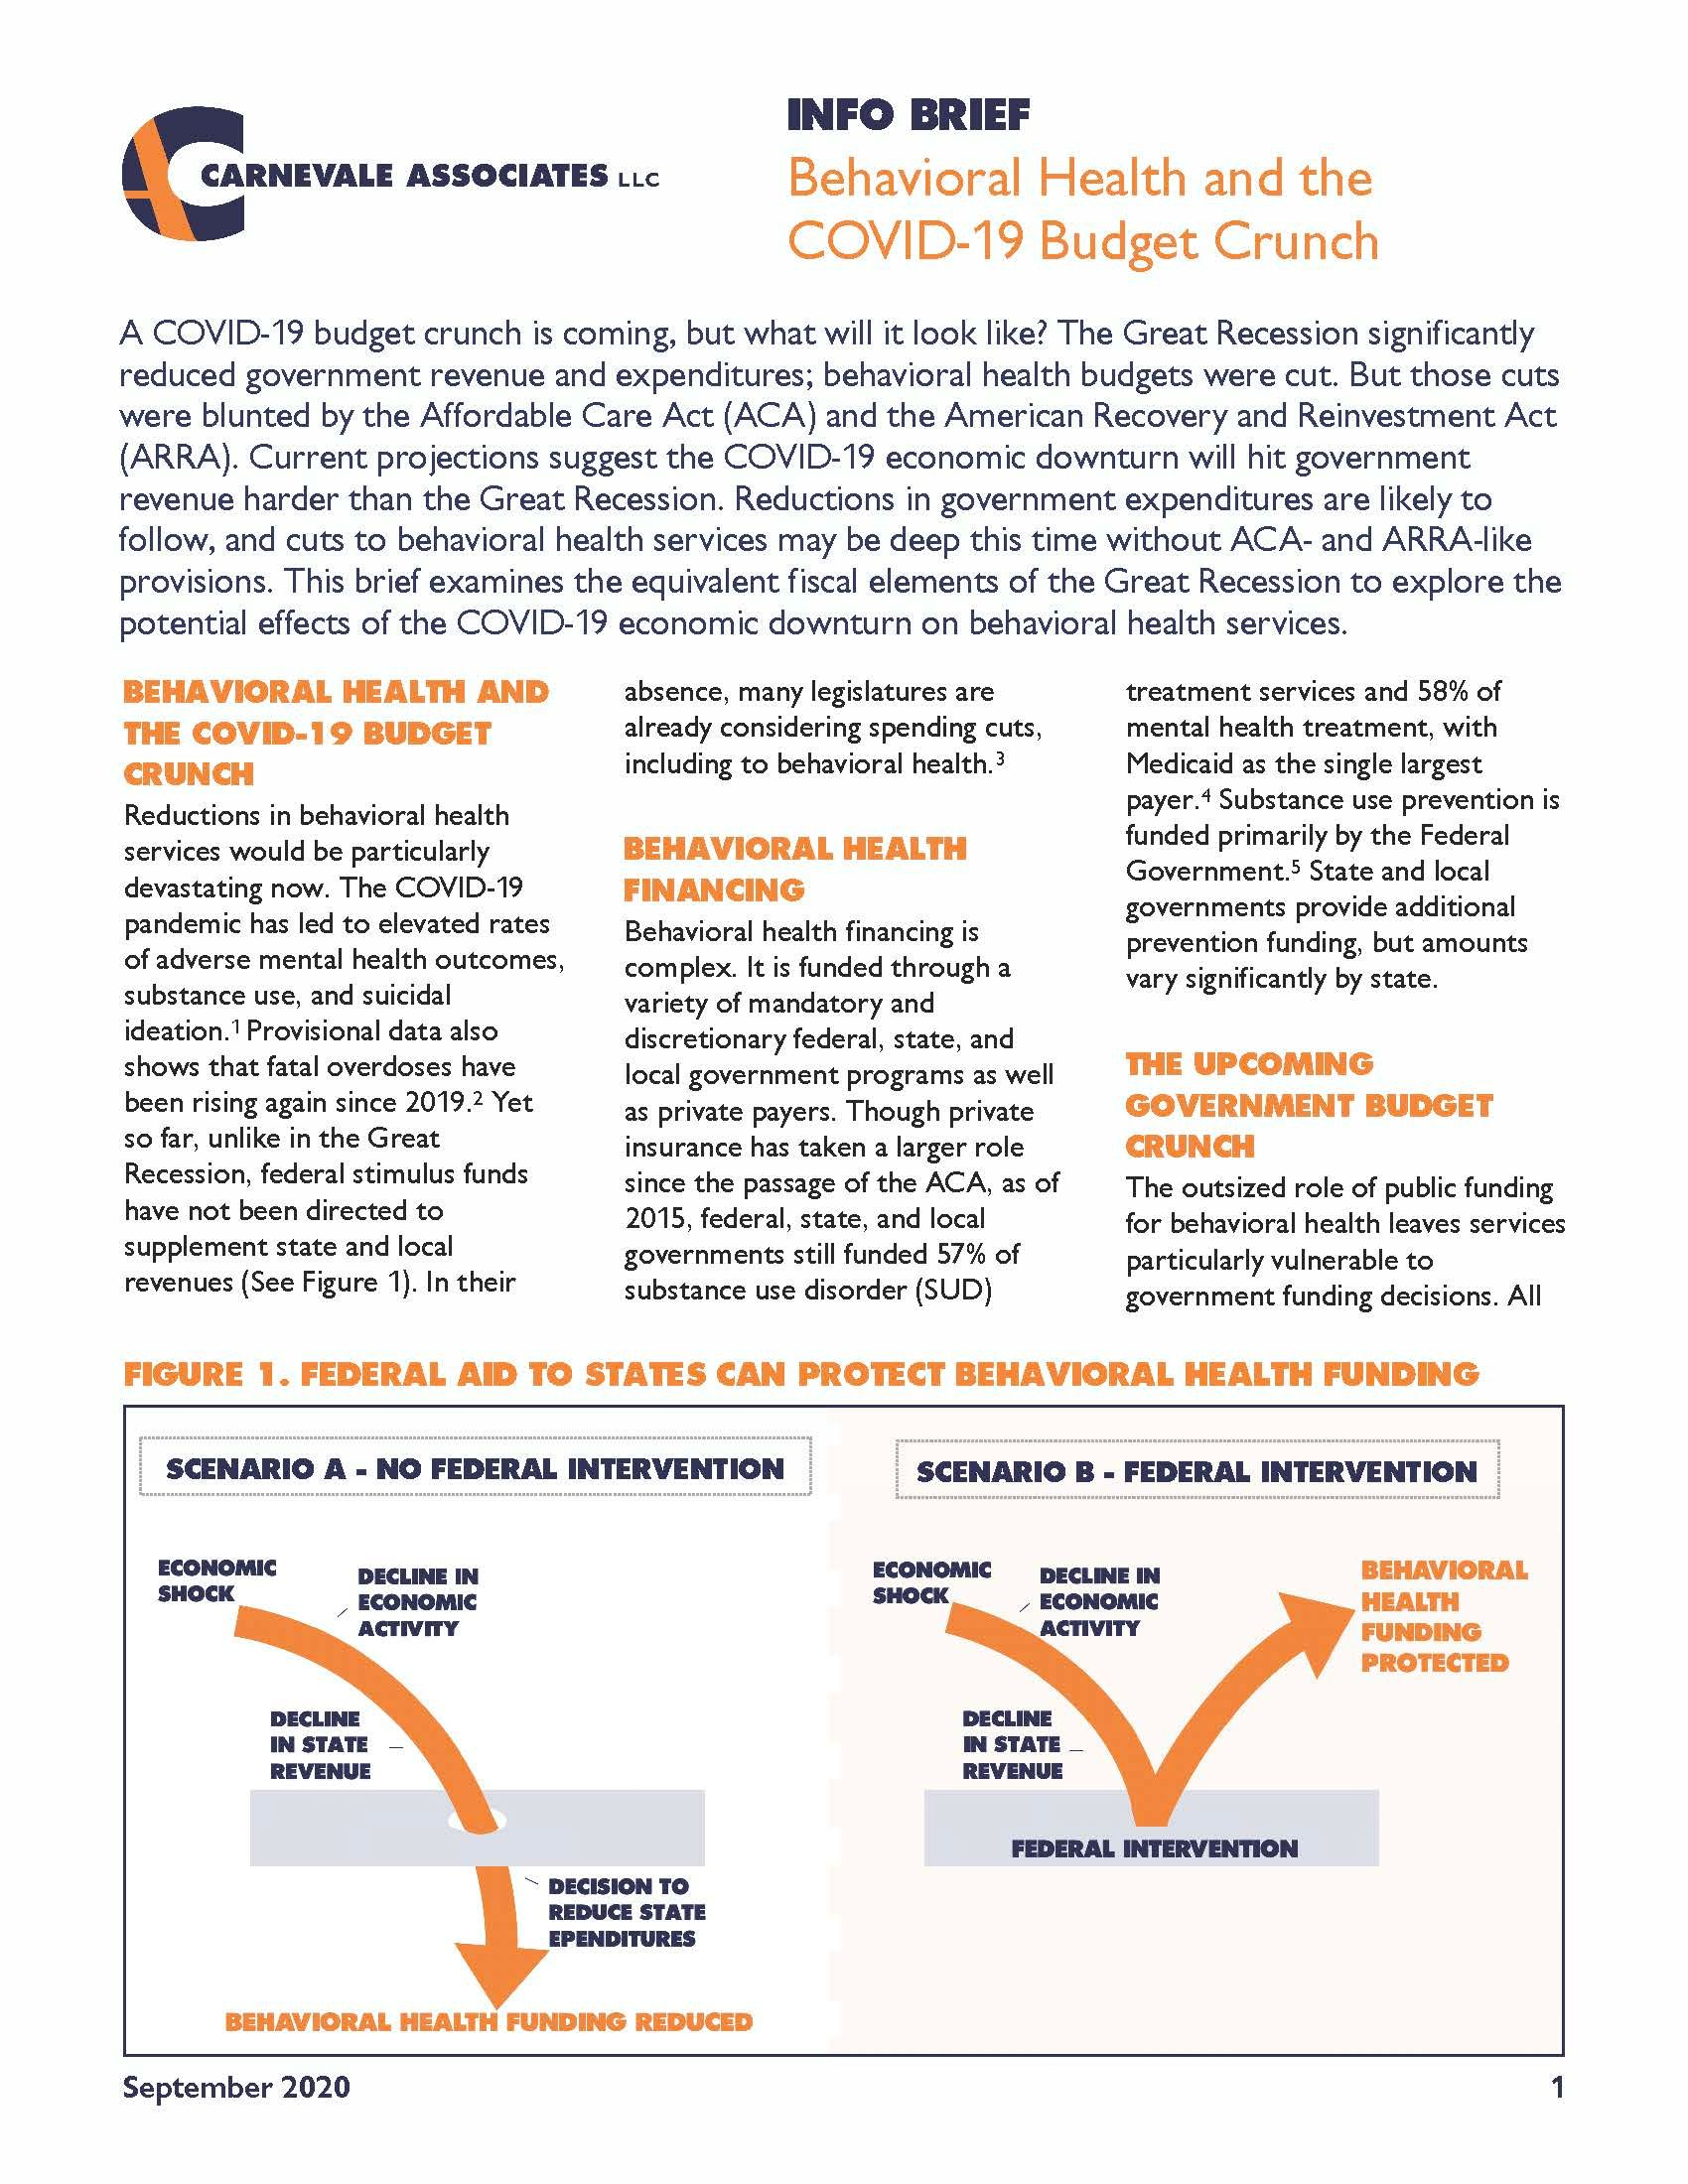 Behavioral Health and the COVID-19 Budget Crunch